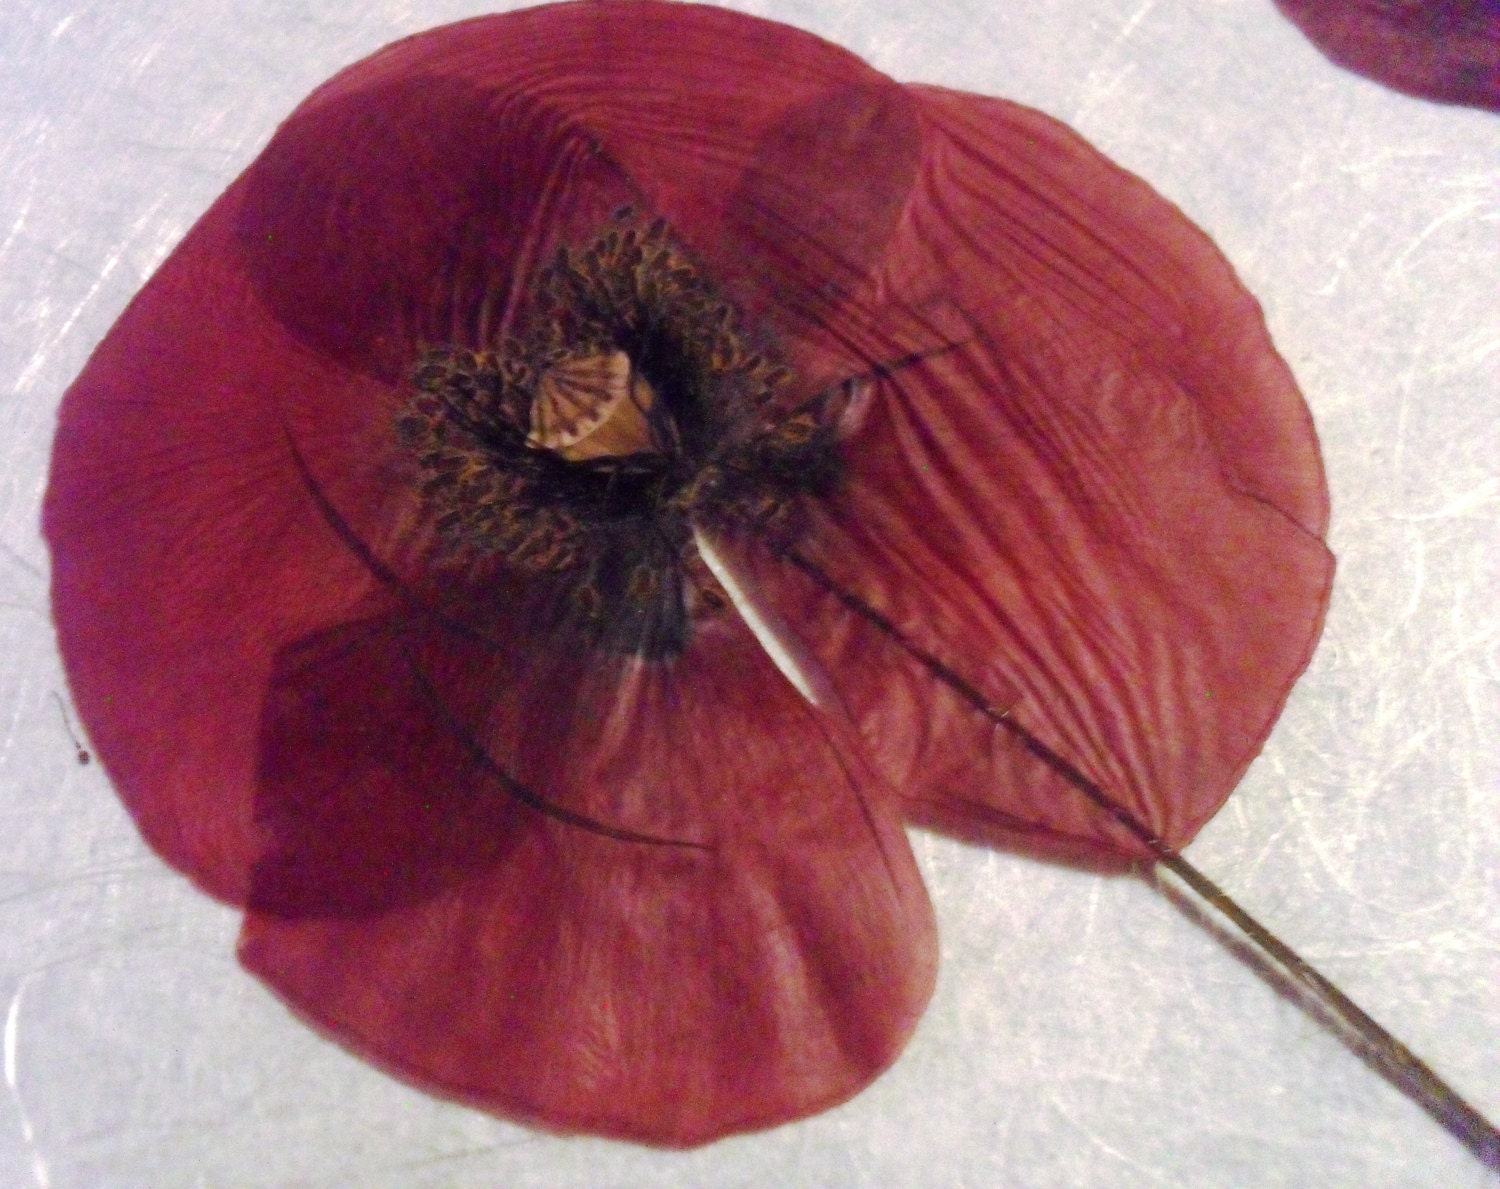 Dried Pressed Flowers / Botanicals. Red Poppy vibrant color.